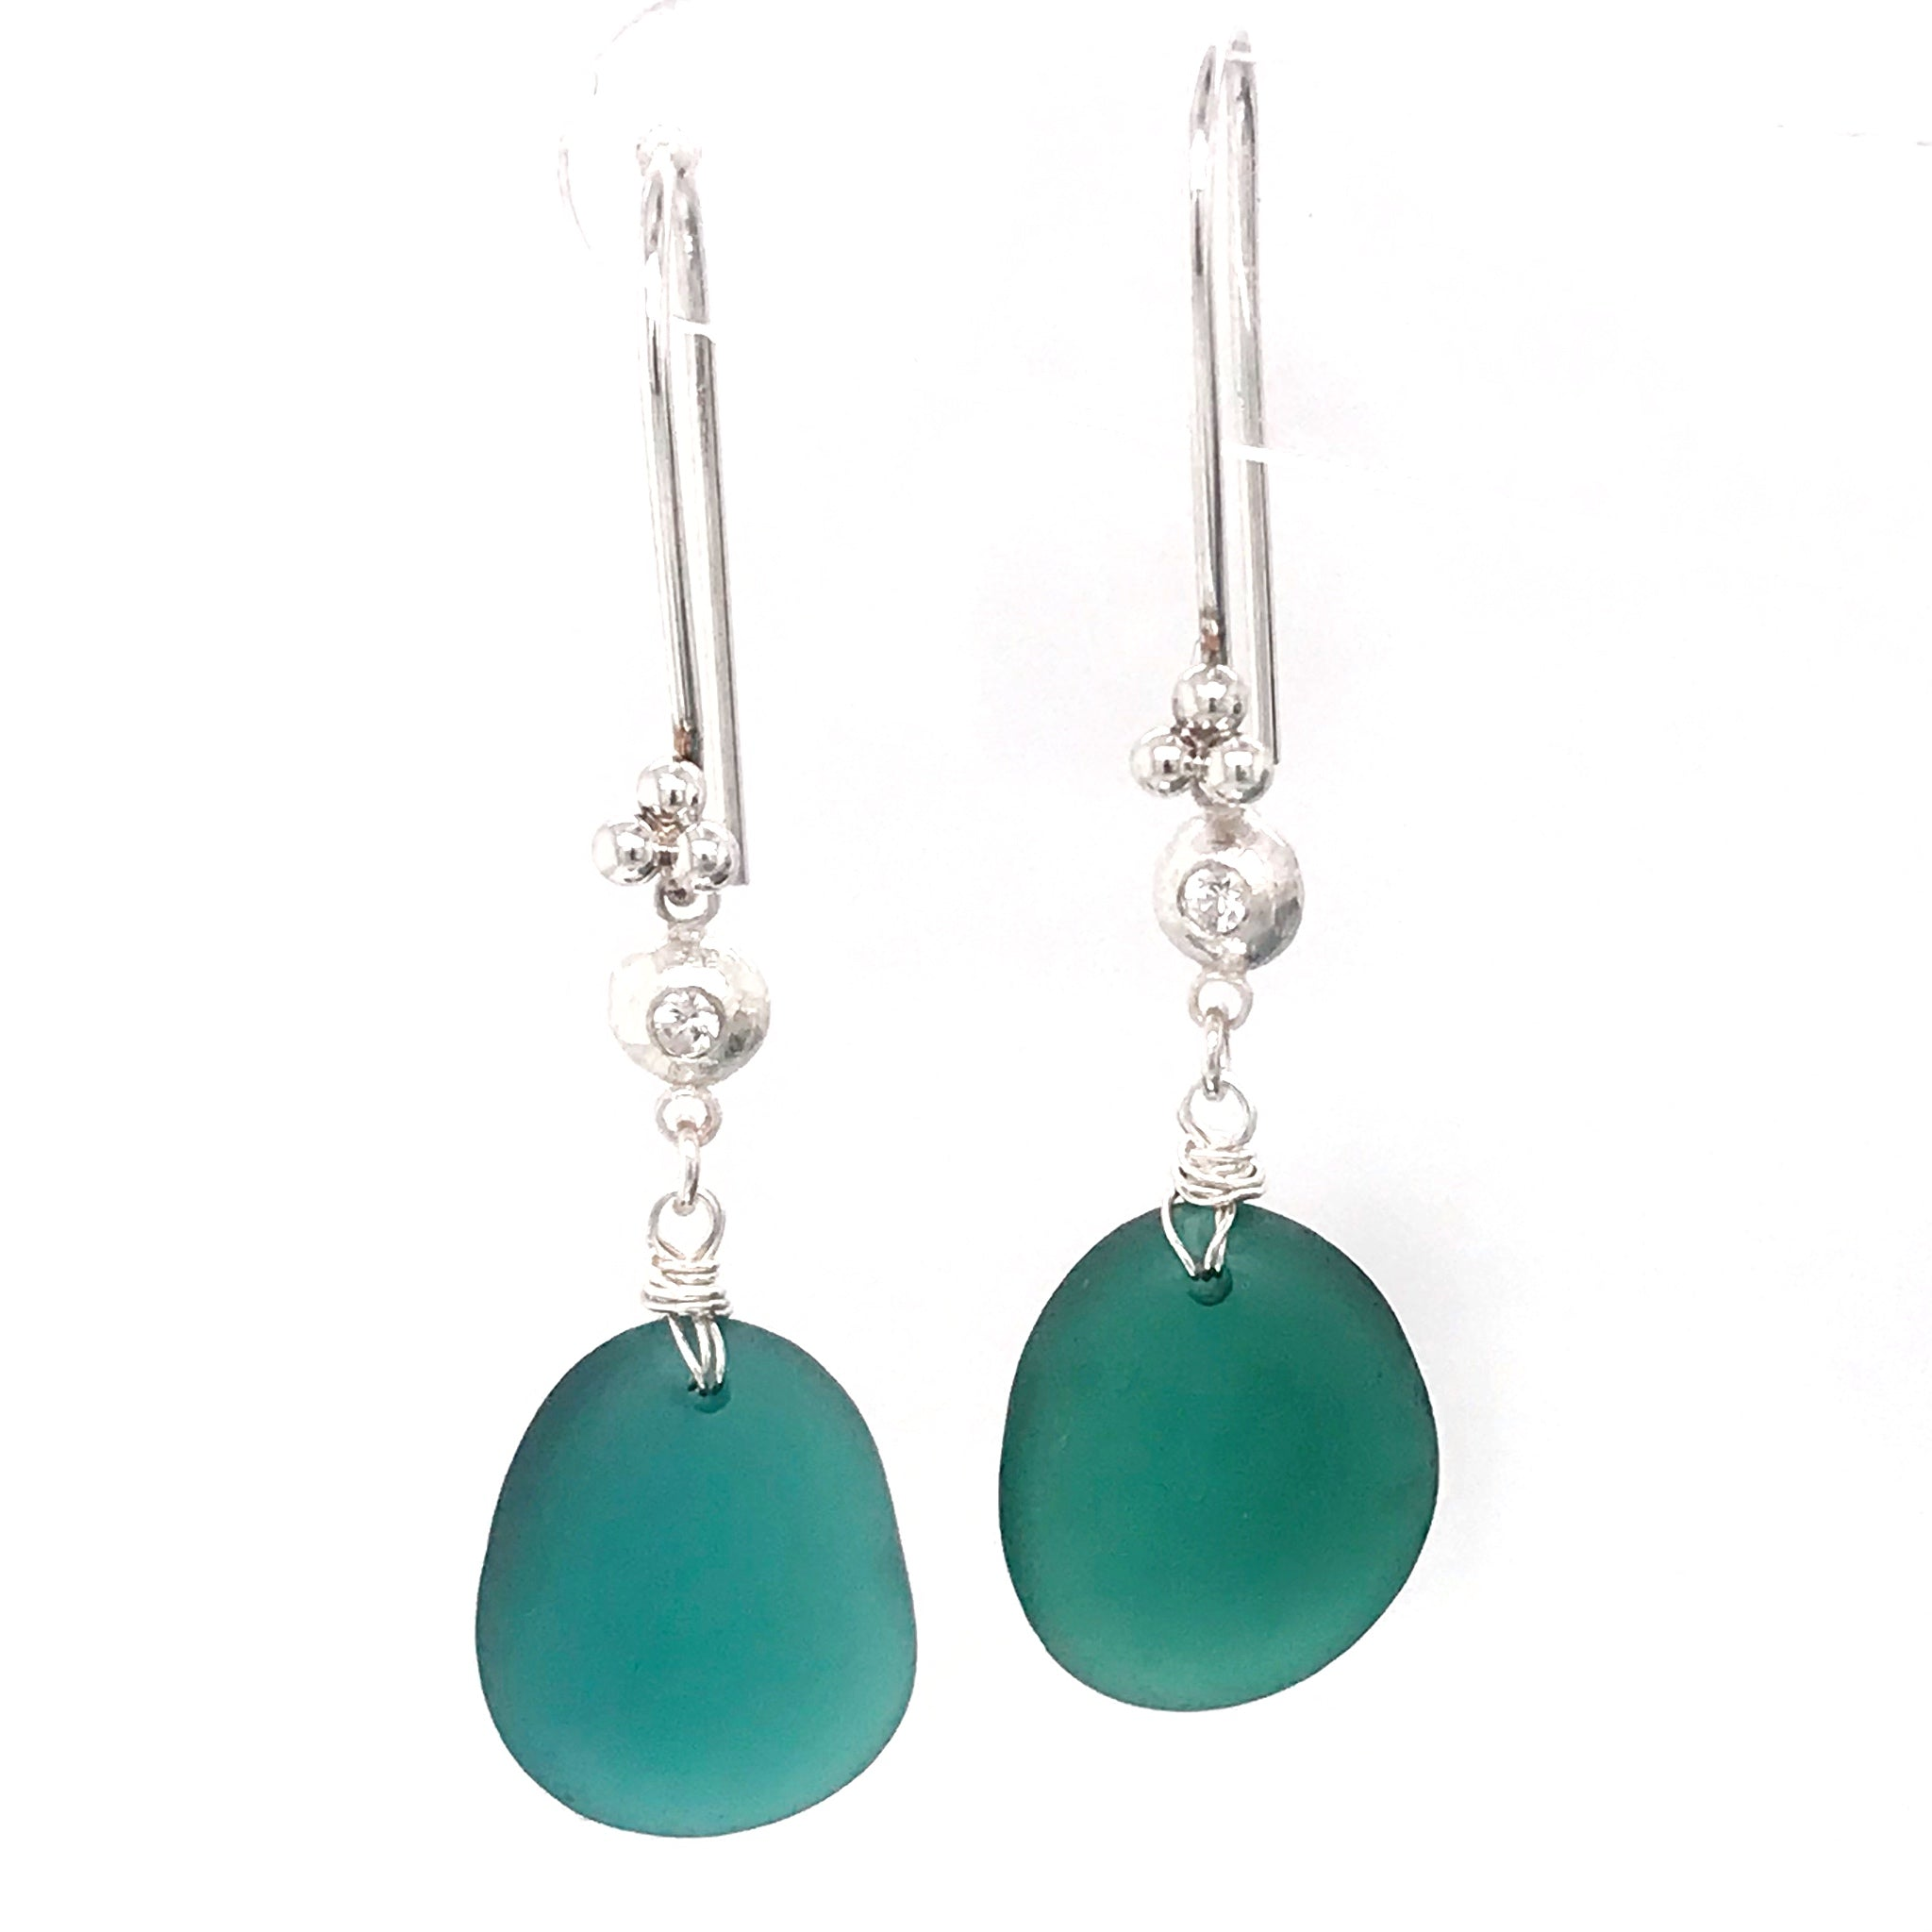 teal-green-sea-glass-earrings-sterling-silver-with-white-sapphires-kriket-broadhurst-jewellery-australia-made